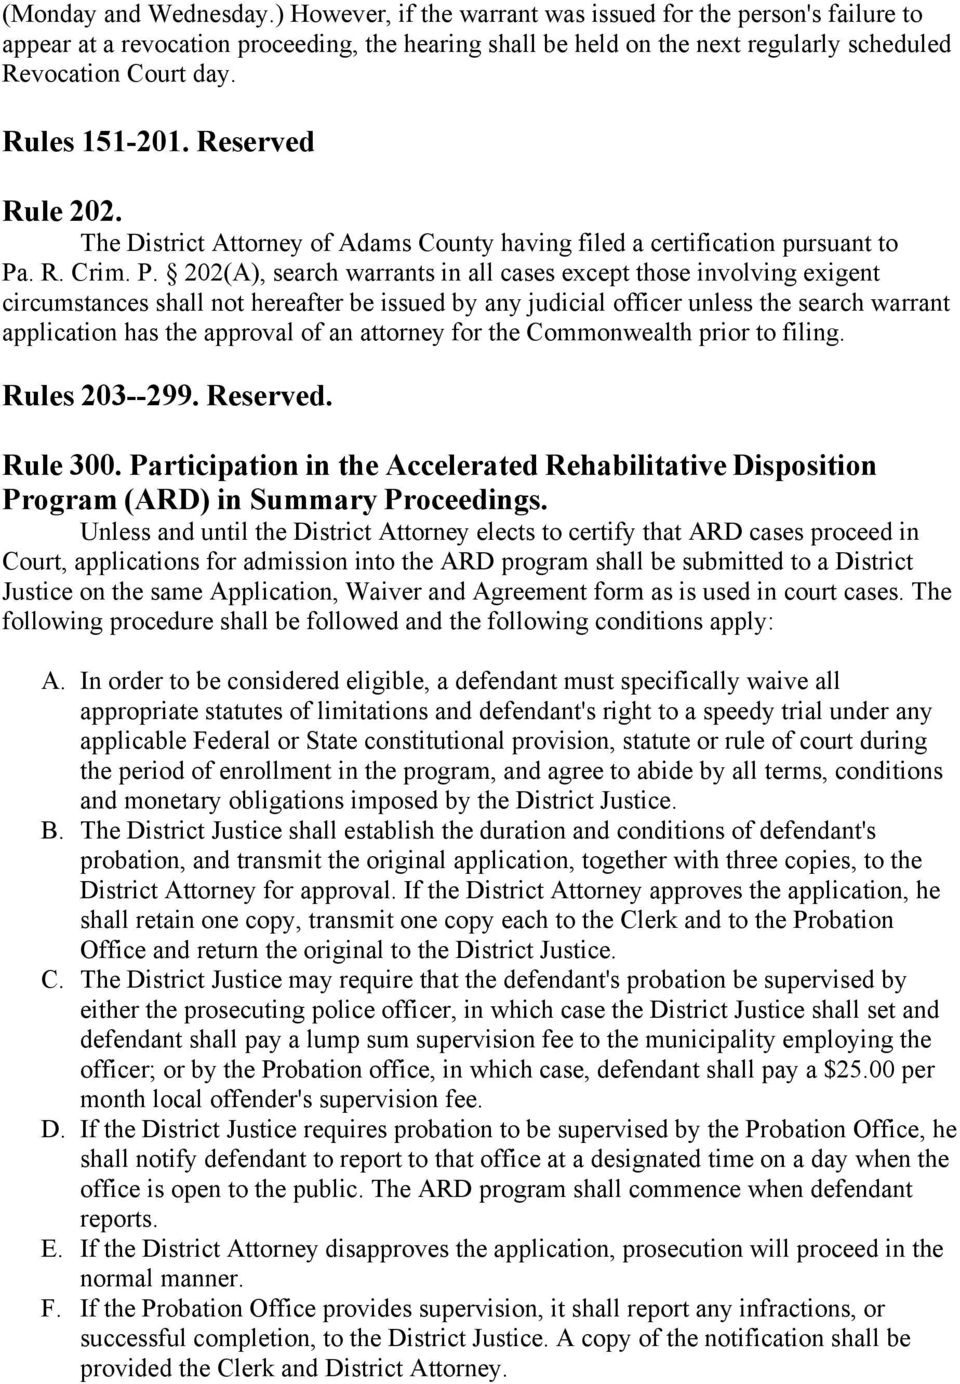 ADAMS COUNTY COURT OF COMMON PLEAS RULES OF CRIMINAL PROCEDURE - PDF